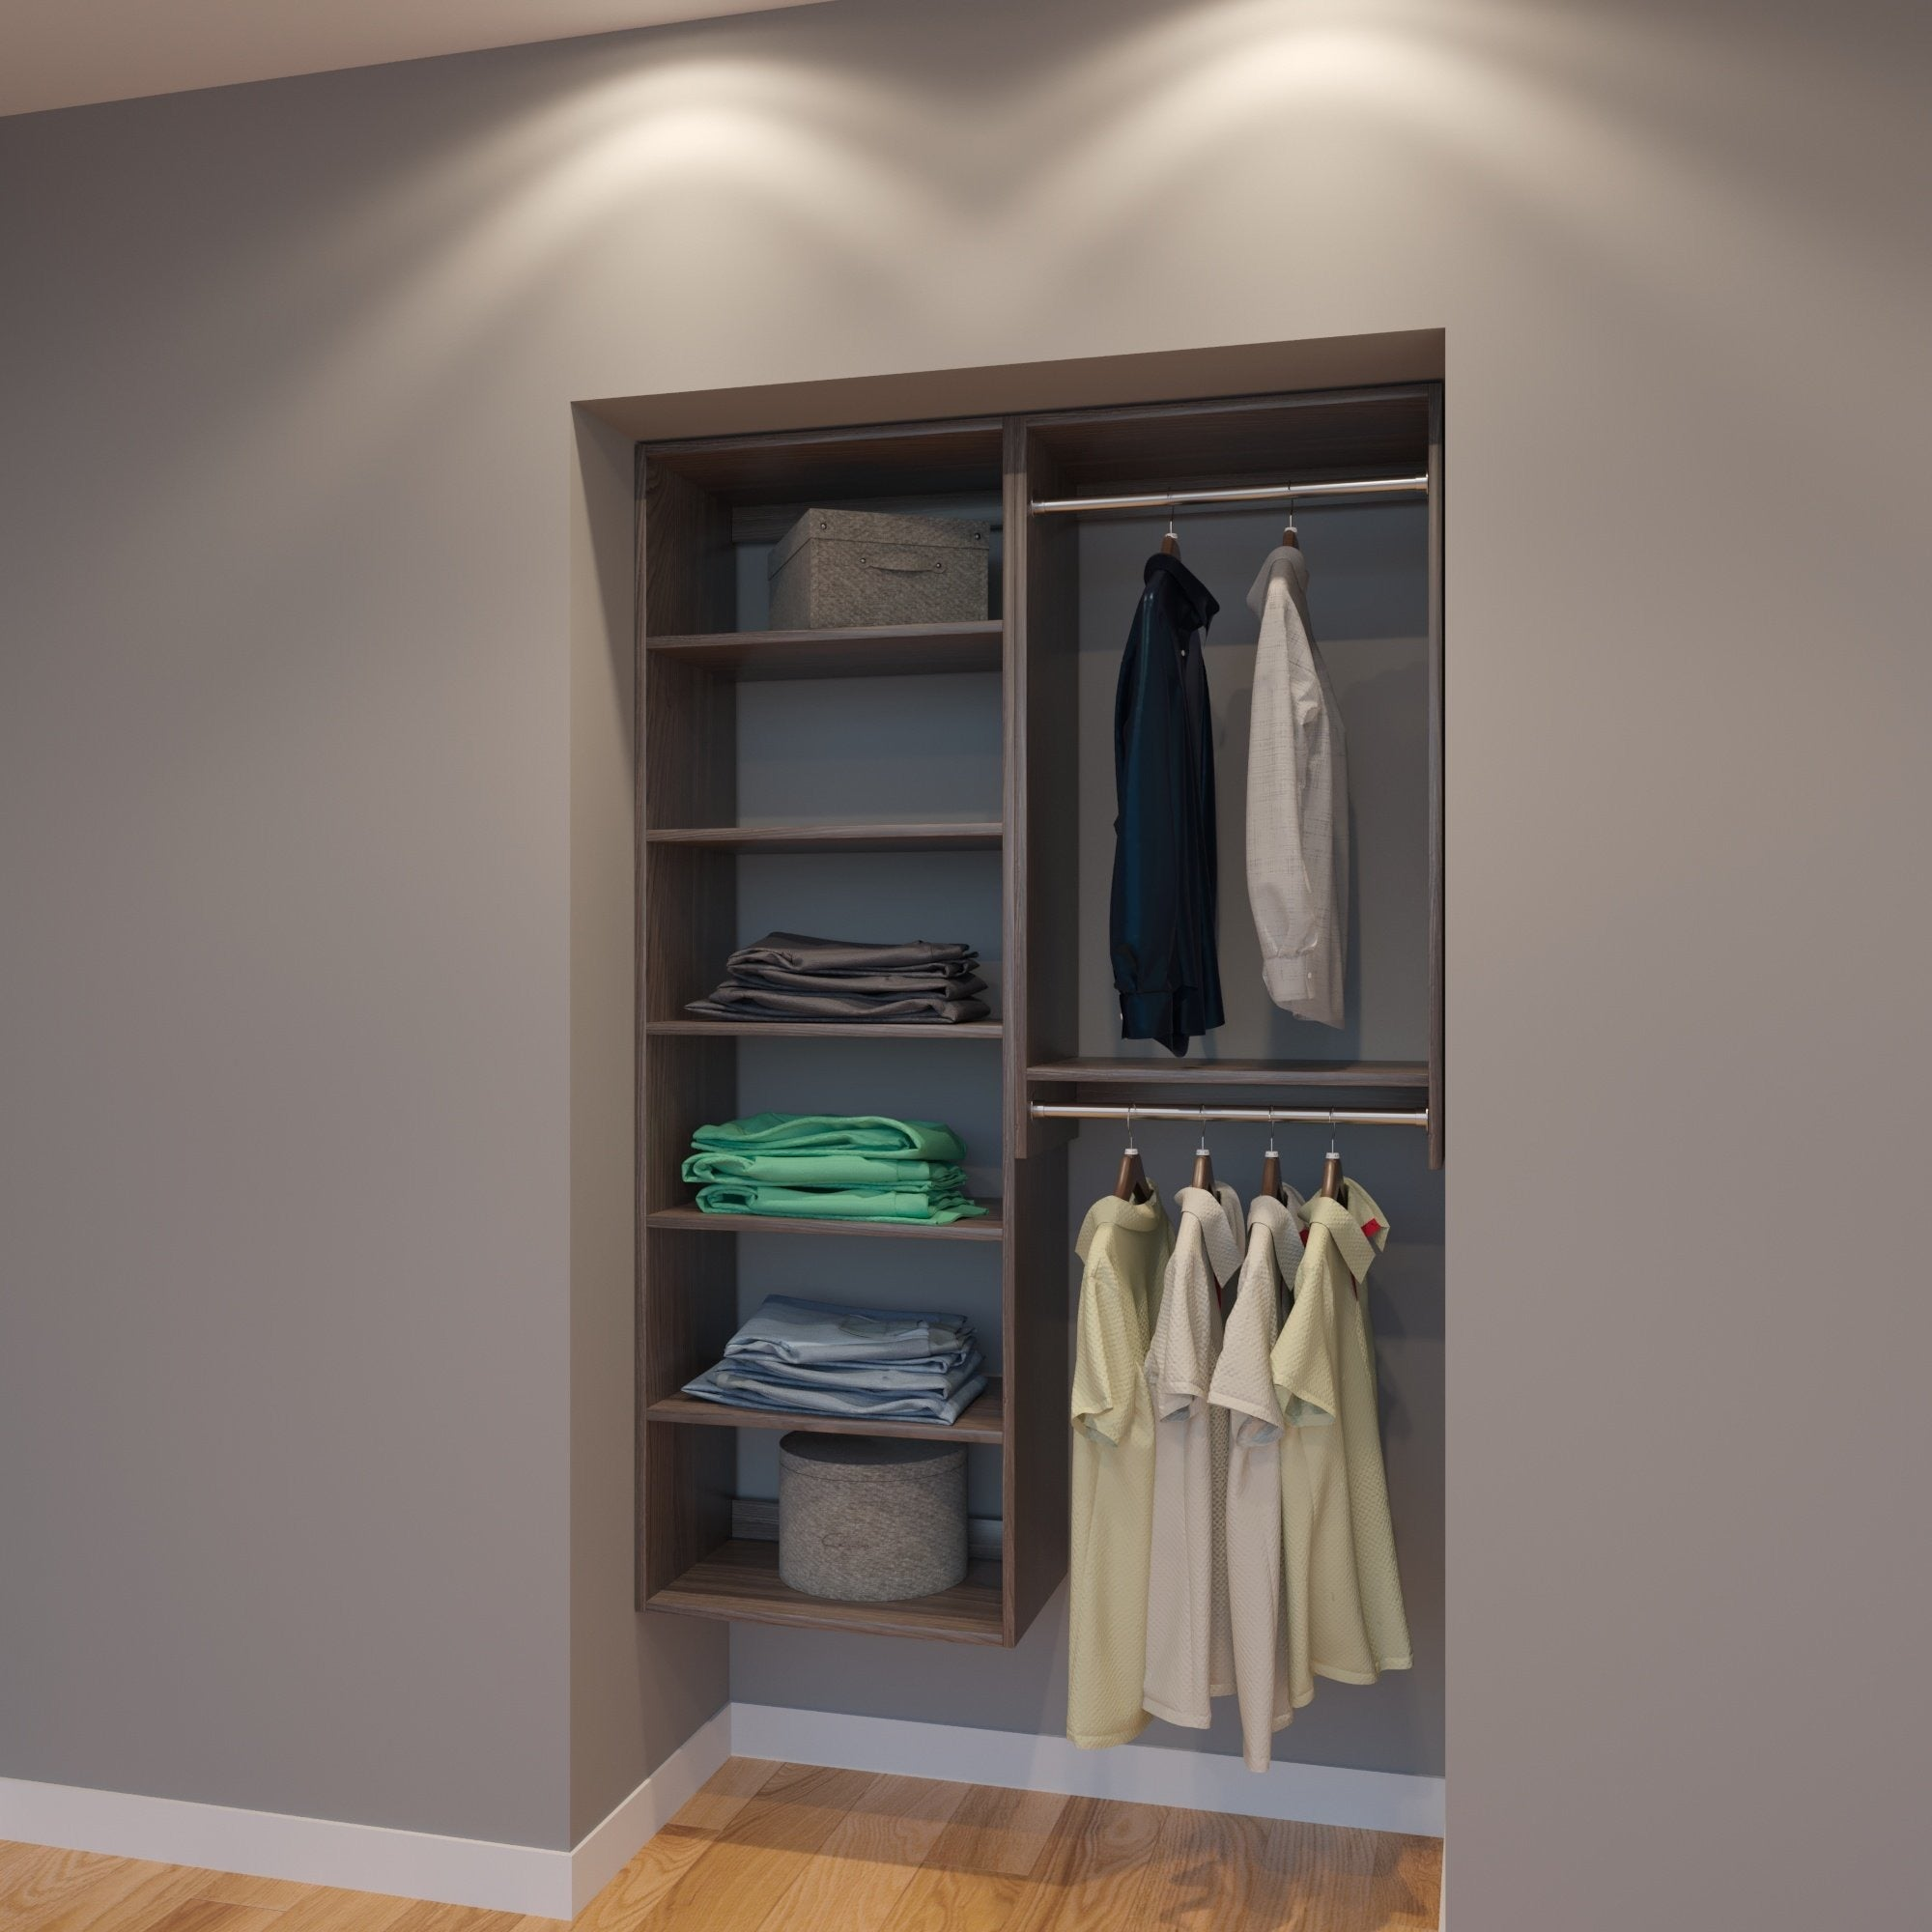 colors closet pipe homelife hanging system photo from organized organizer reveal organizing shelving hangingelves vertical of size full systems industrial concept new paint shelves rodelf for